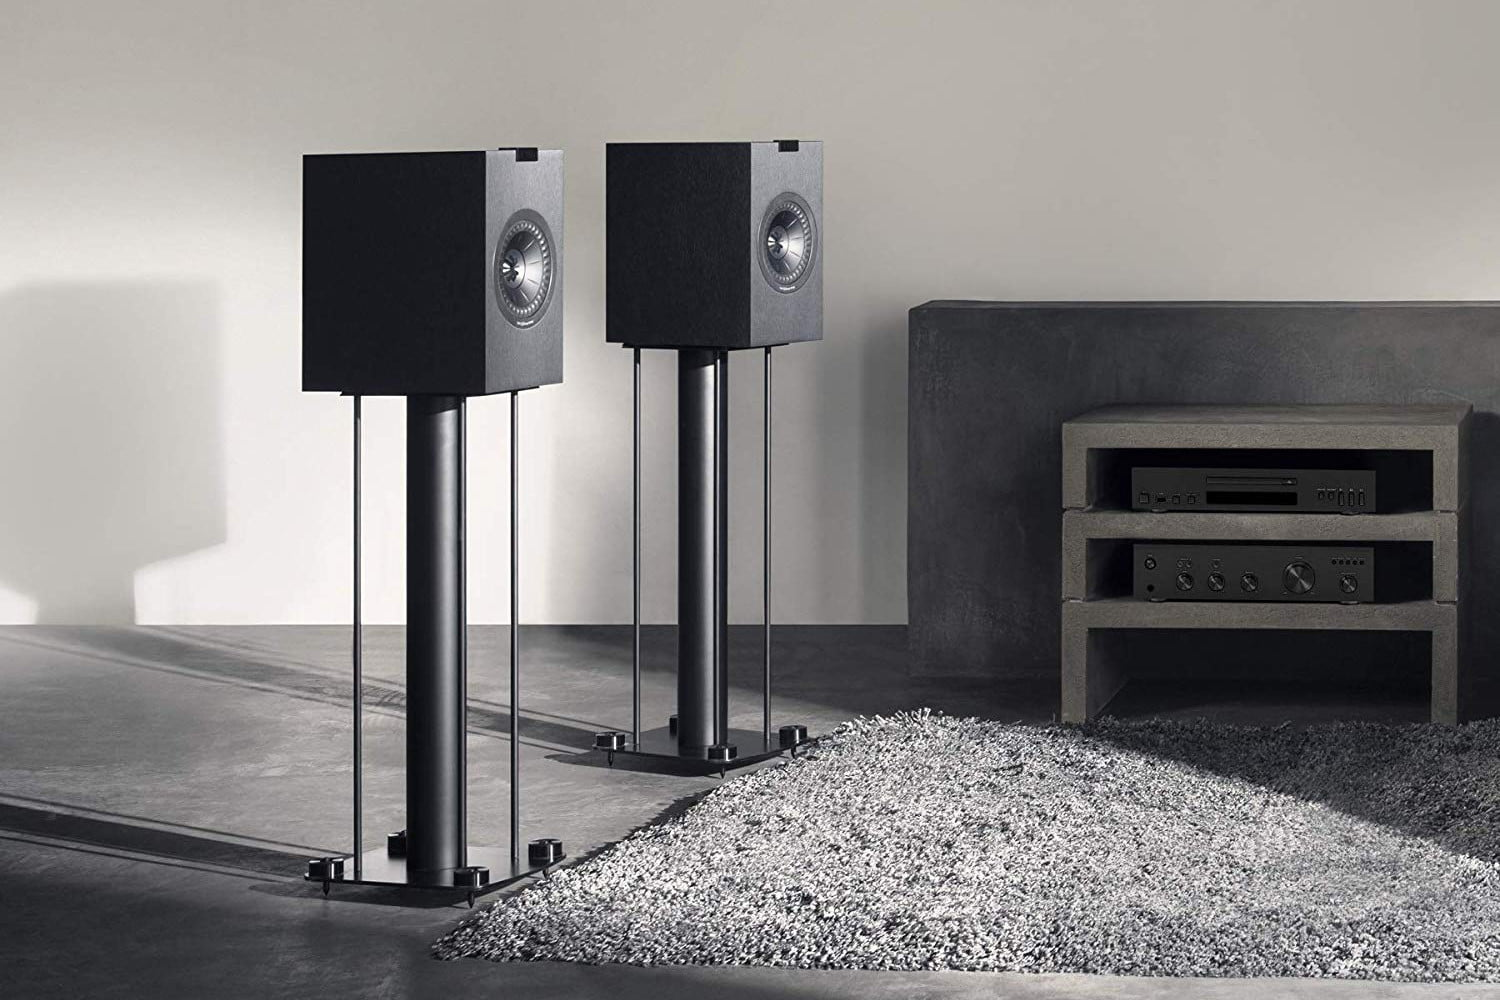 Two superb pairs of Kef speakers are on sale right now for up to $400 off